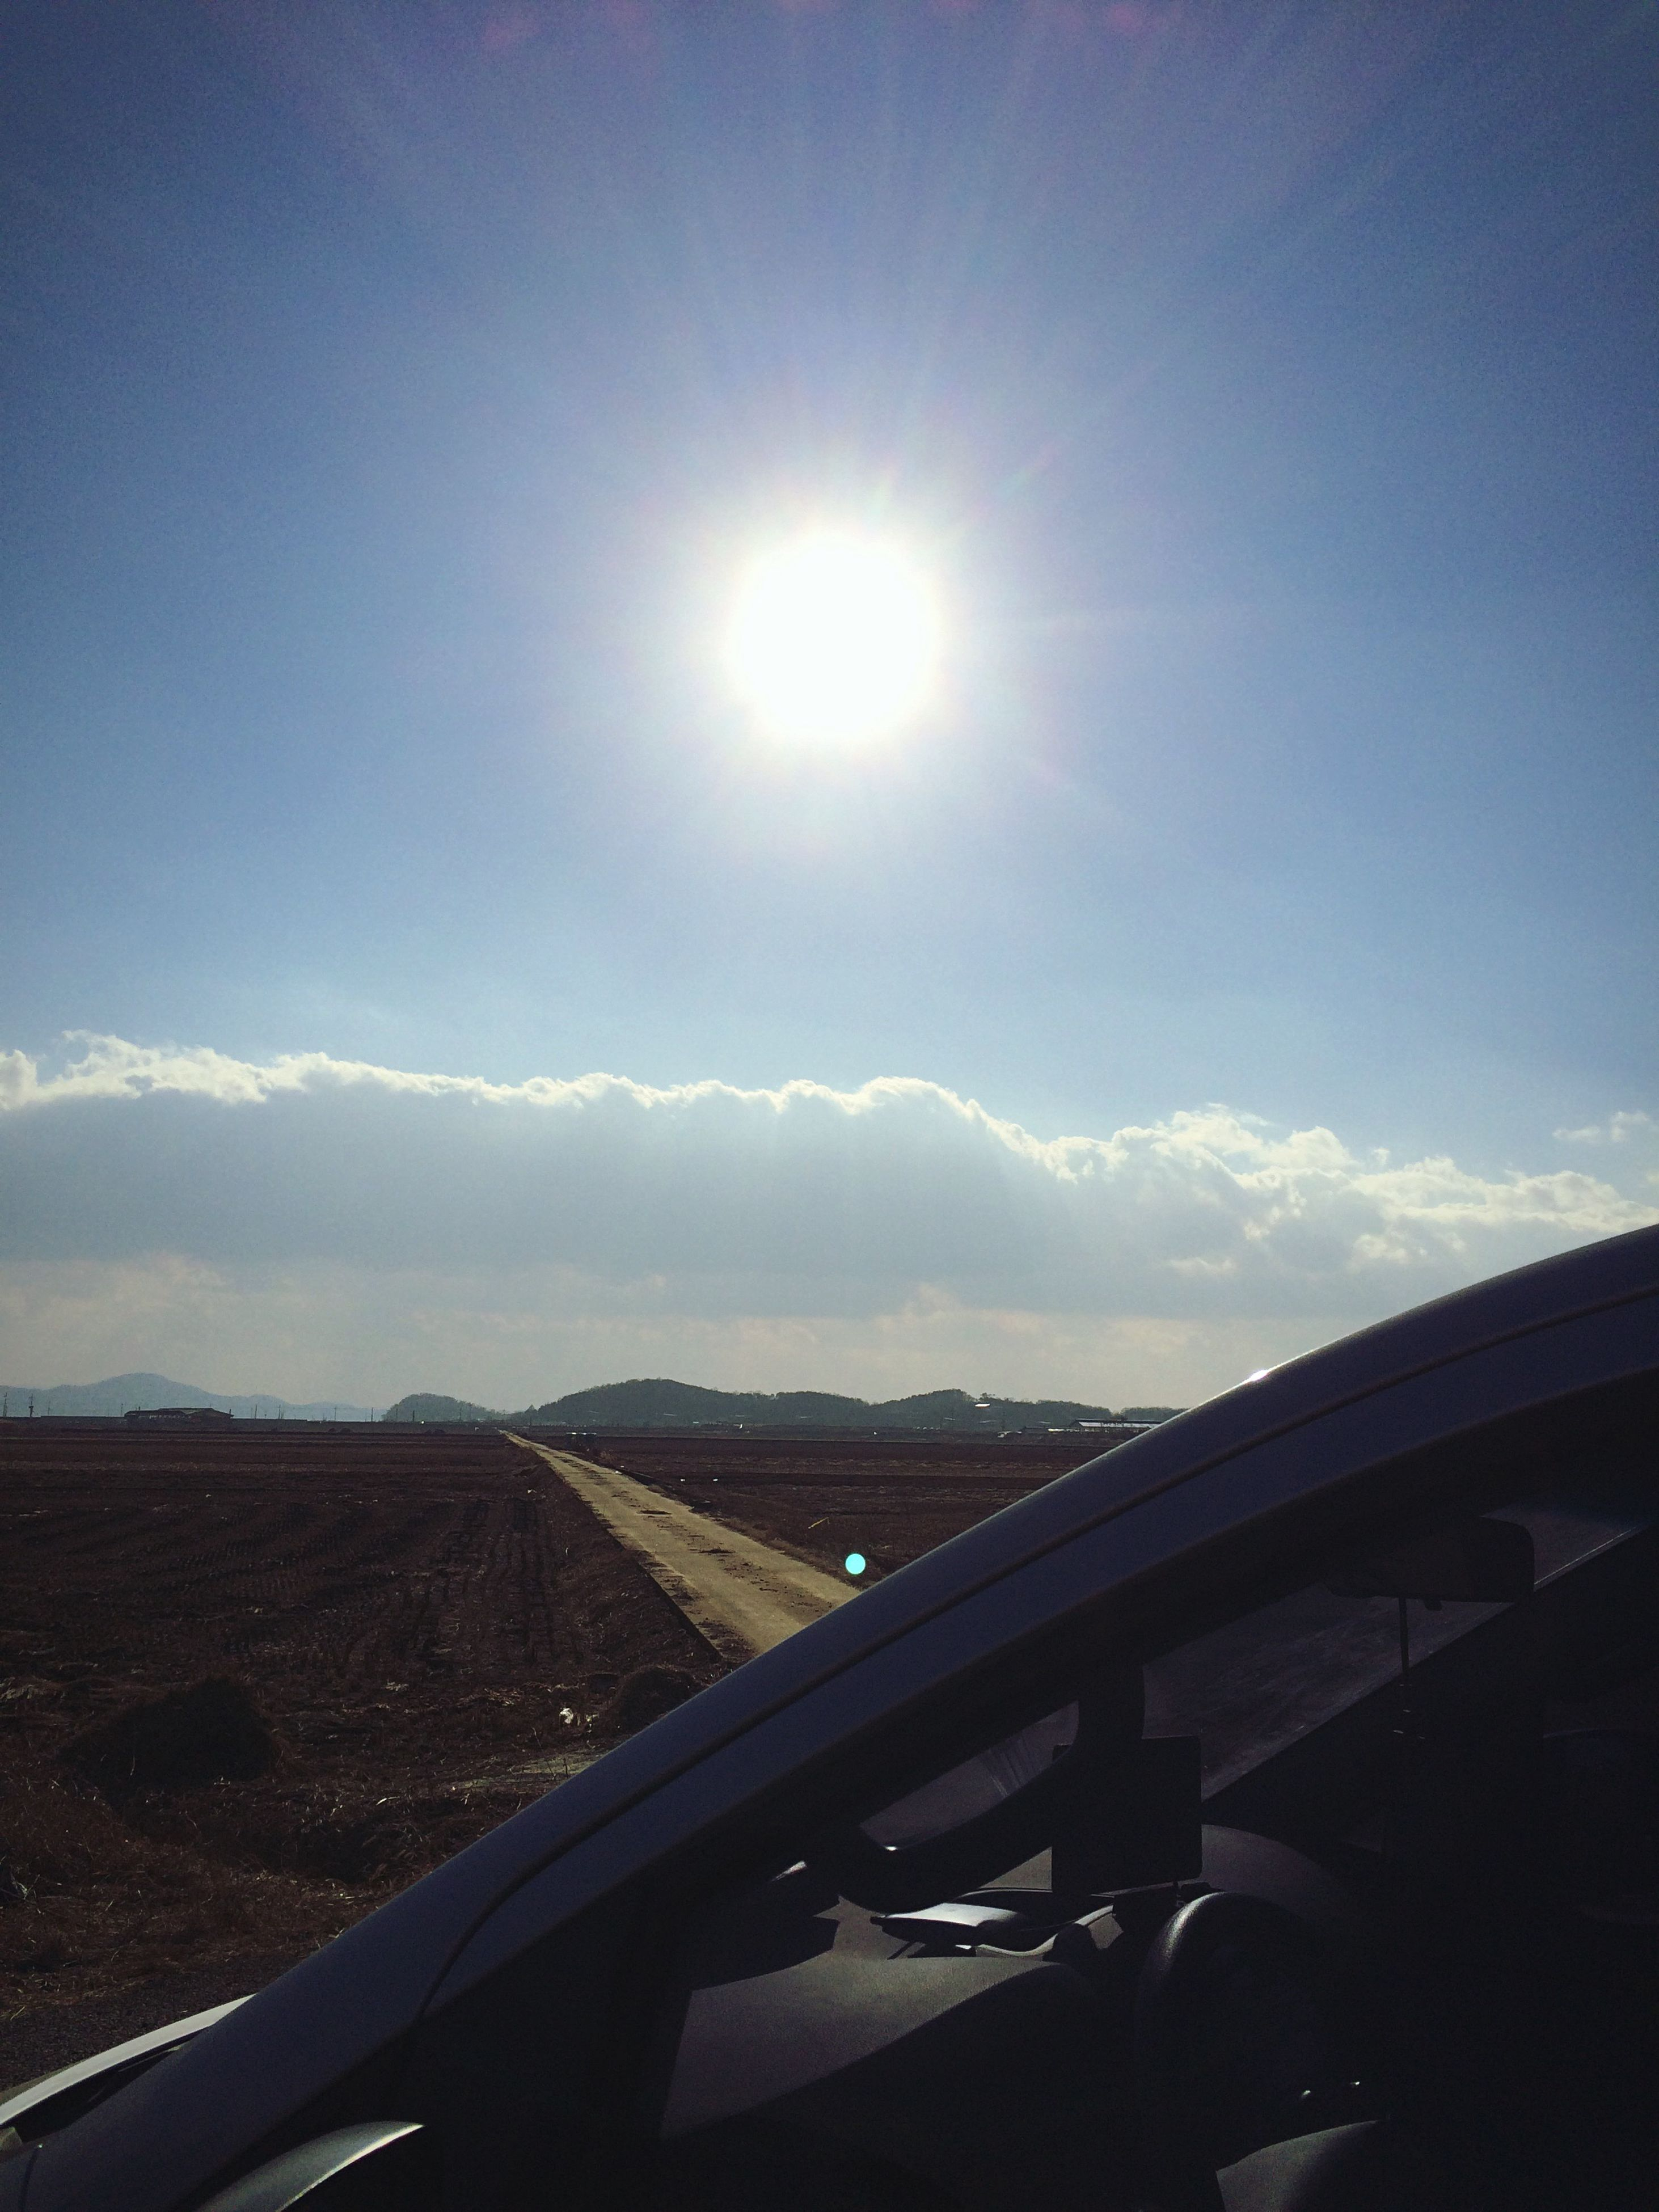 transportation, sun, sunbeam, sunlight, mode of transport, lens flare, car, sky, land vehicle, road, sunny, vehicle interior, day, travel, bright, nature, on the move, glass - material, outdoors, cloud